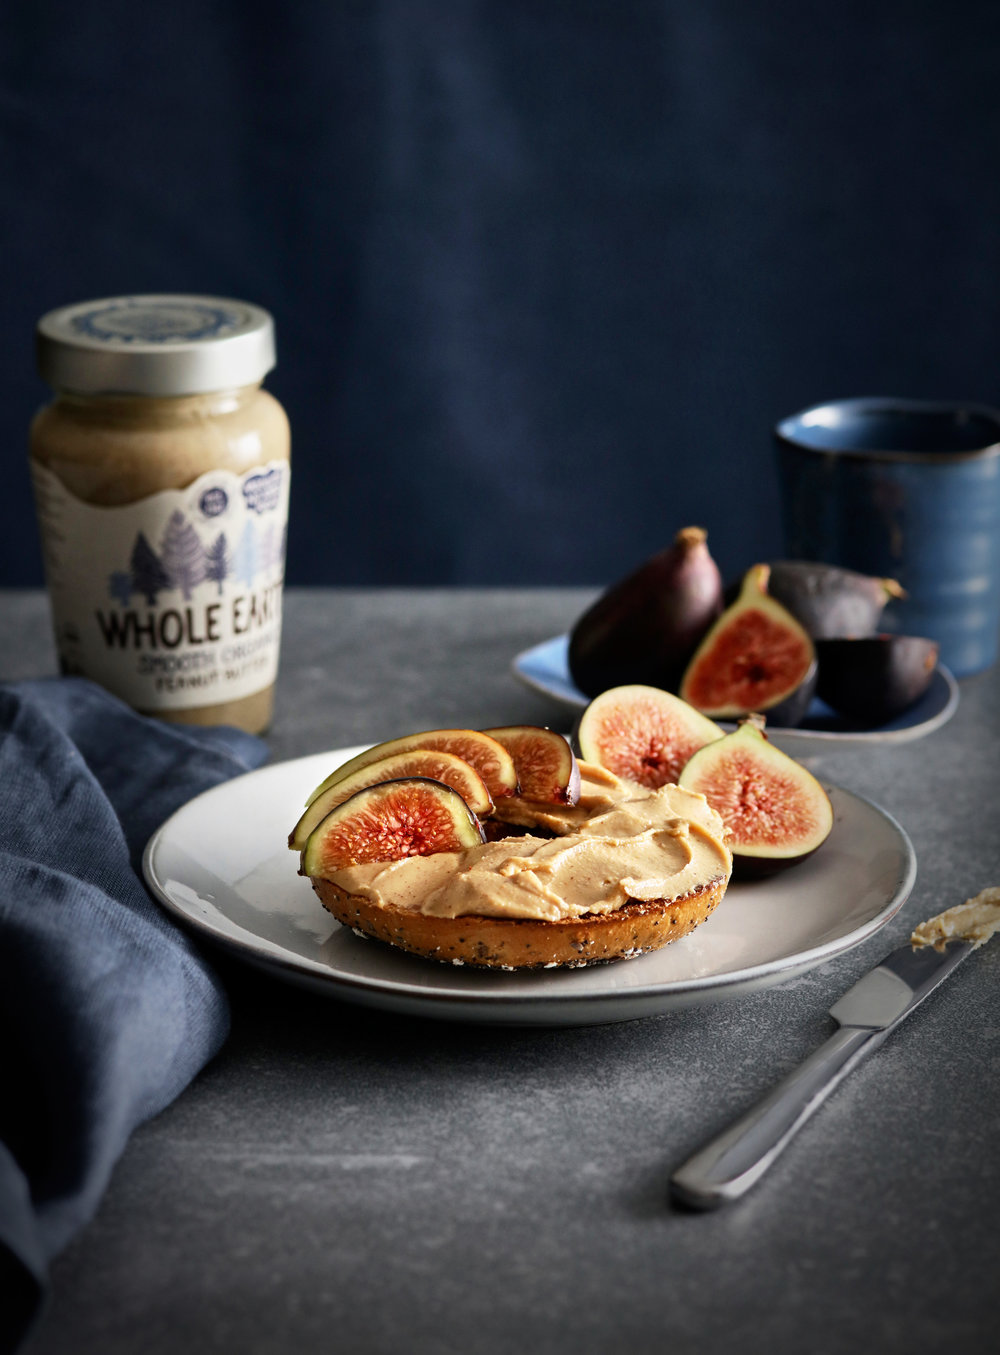 Peanut butter on bagel with figs